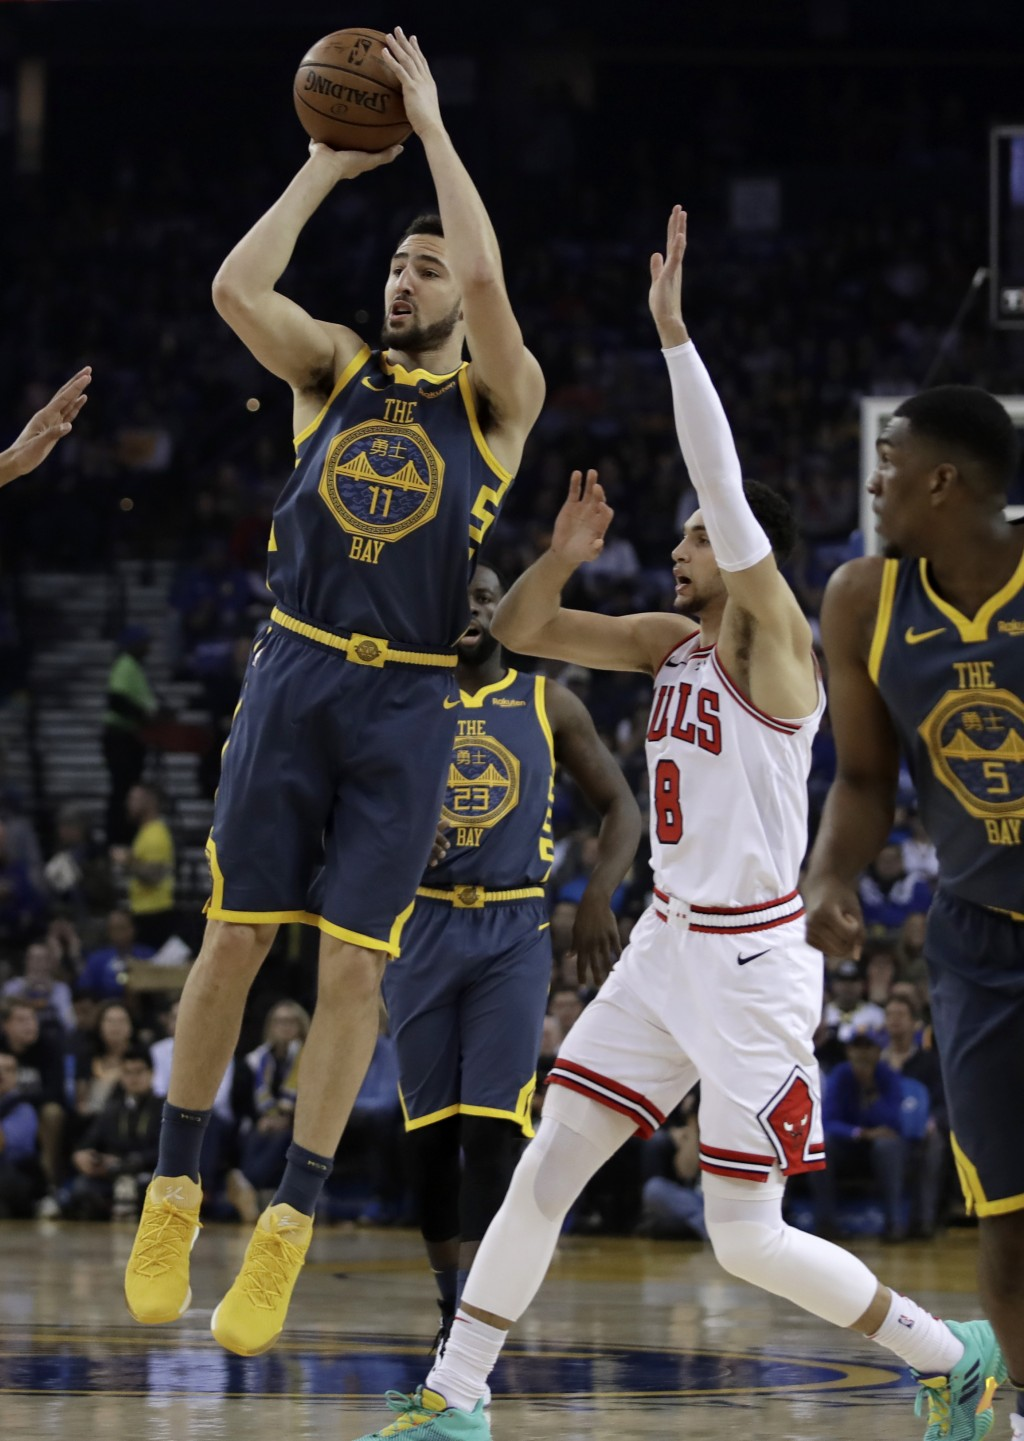 Golden State Warriors' Klay Thompson, left, shoots past Chicago Bulls' Zach LaVine (8) during the first half of an NBA basketball game Friday, Jan. 11